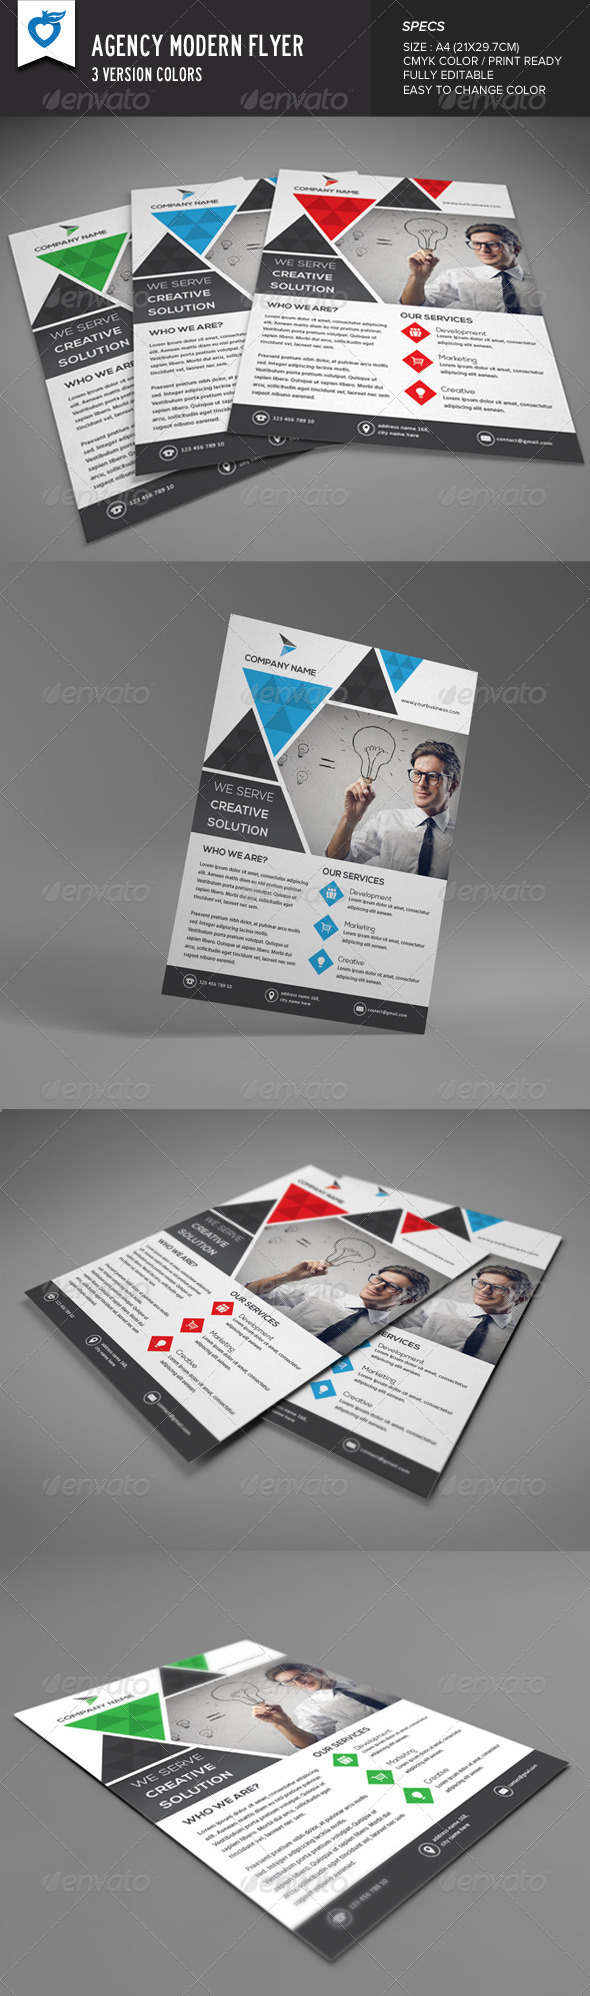 GraphicRiver Agency Modern Flyer 8328383